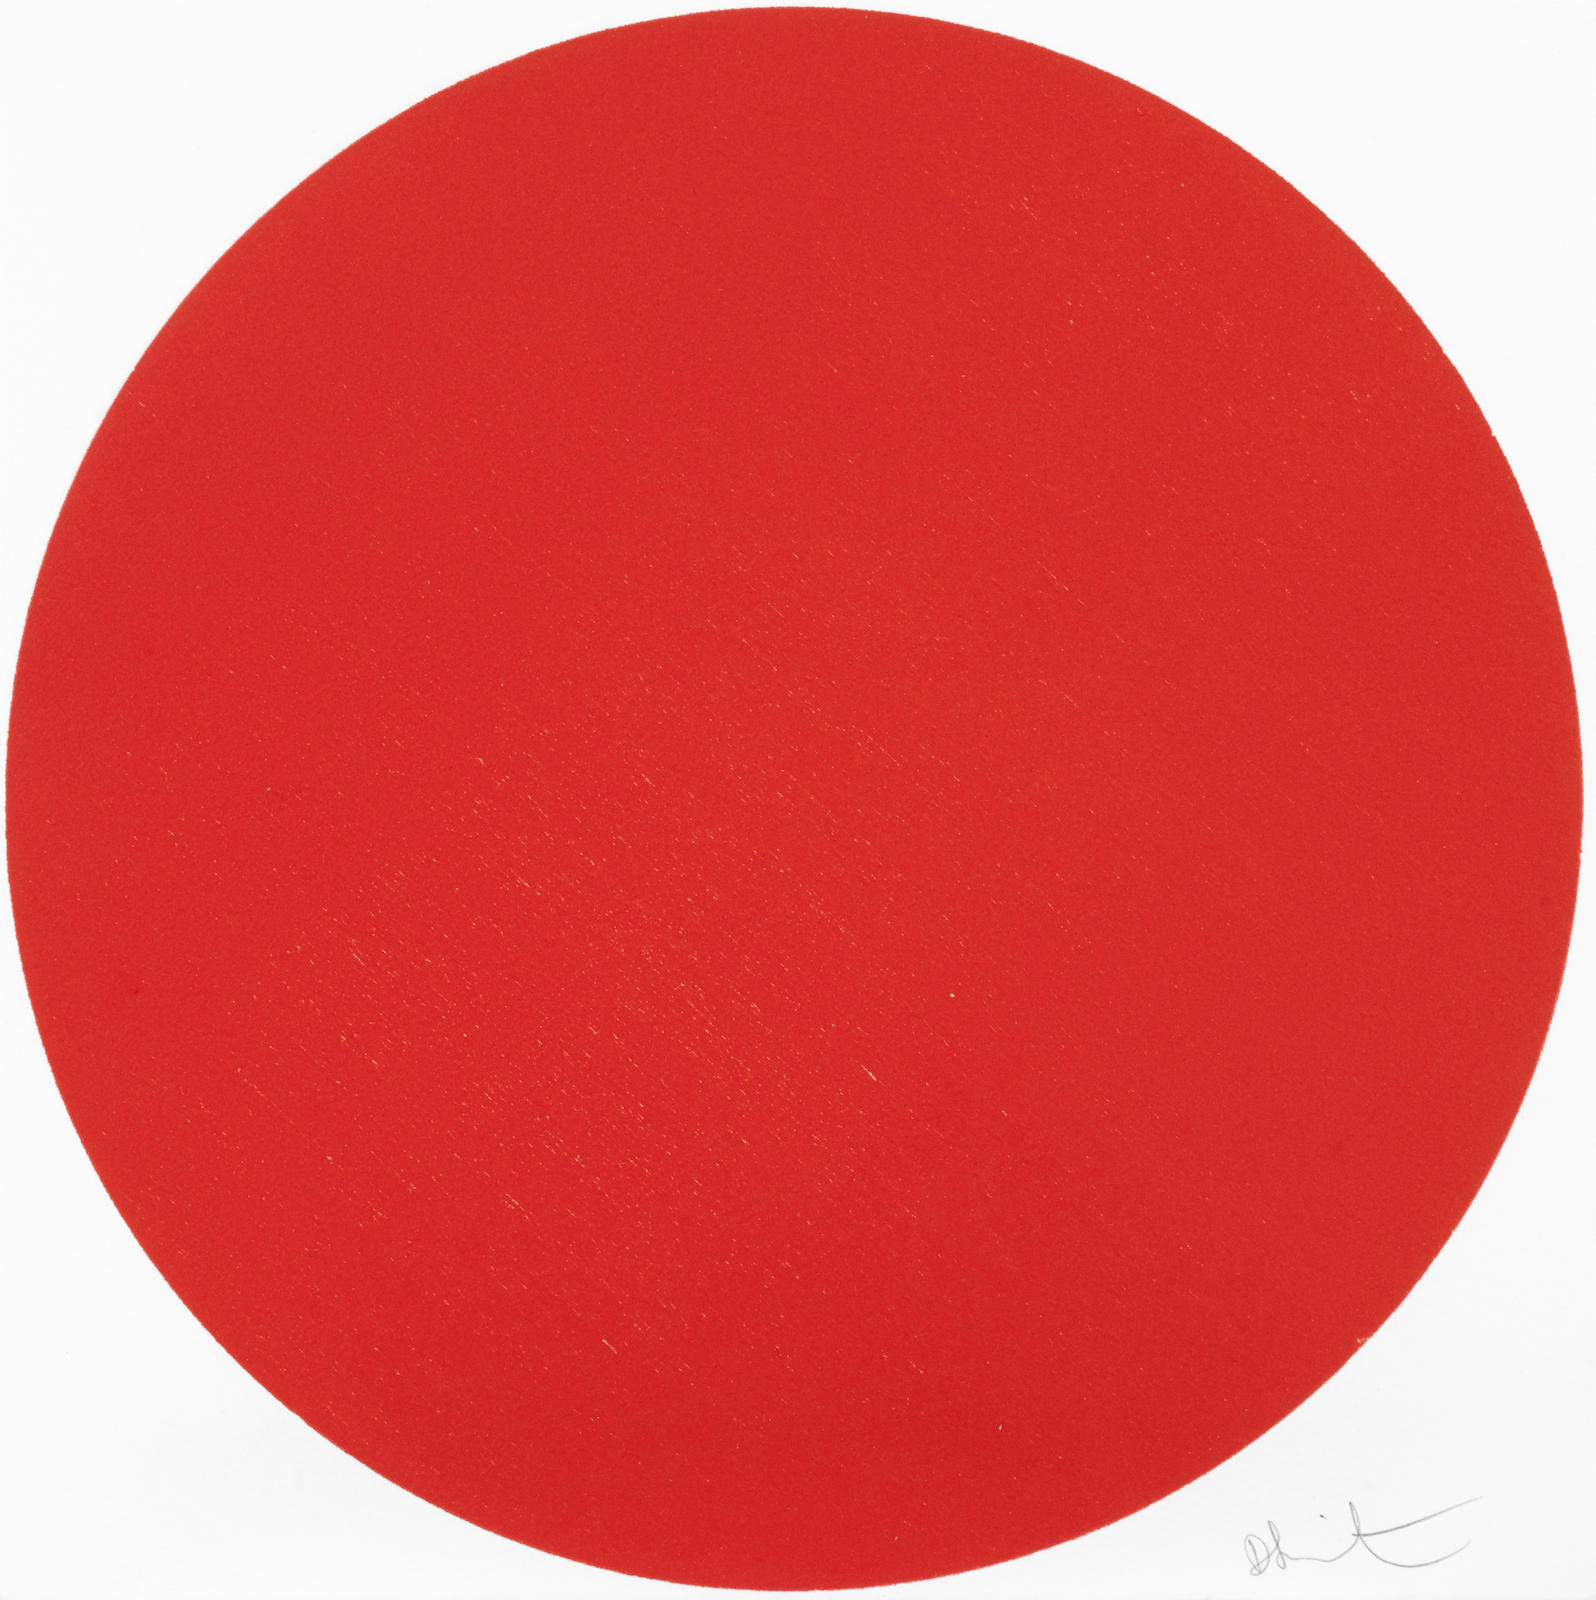 Damien Hirst-Amniotic Fluid Red-2012